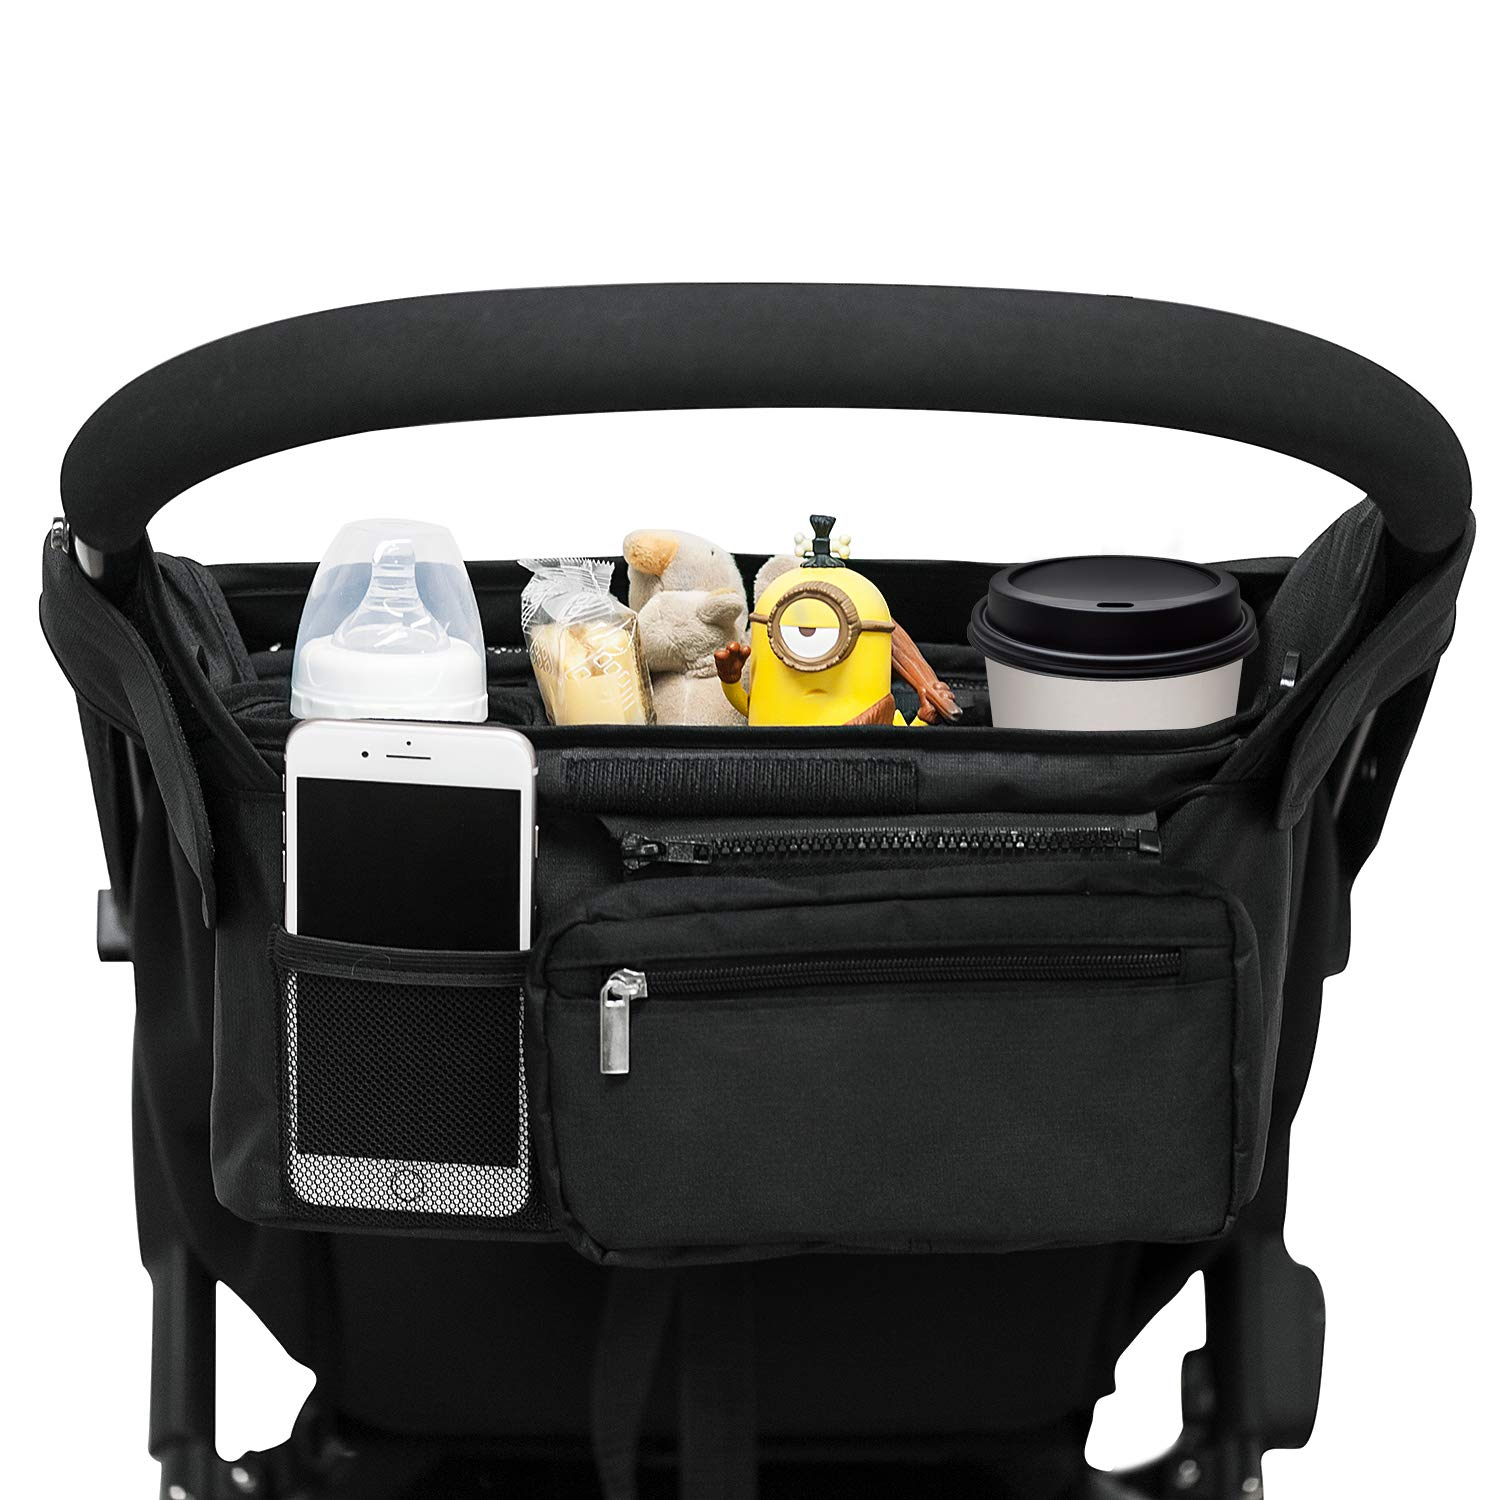 Universal Stroller Organizer with 2 Insulated Cup Holders, Lupantte Stroller Accessories, for Carrying Diaper, iPhone, Toys & Snacks, Fits Britax, Uppababy, Baby Jogger, Bugaboo and BOB Stroller. by Lupantte (Image #1)